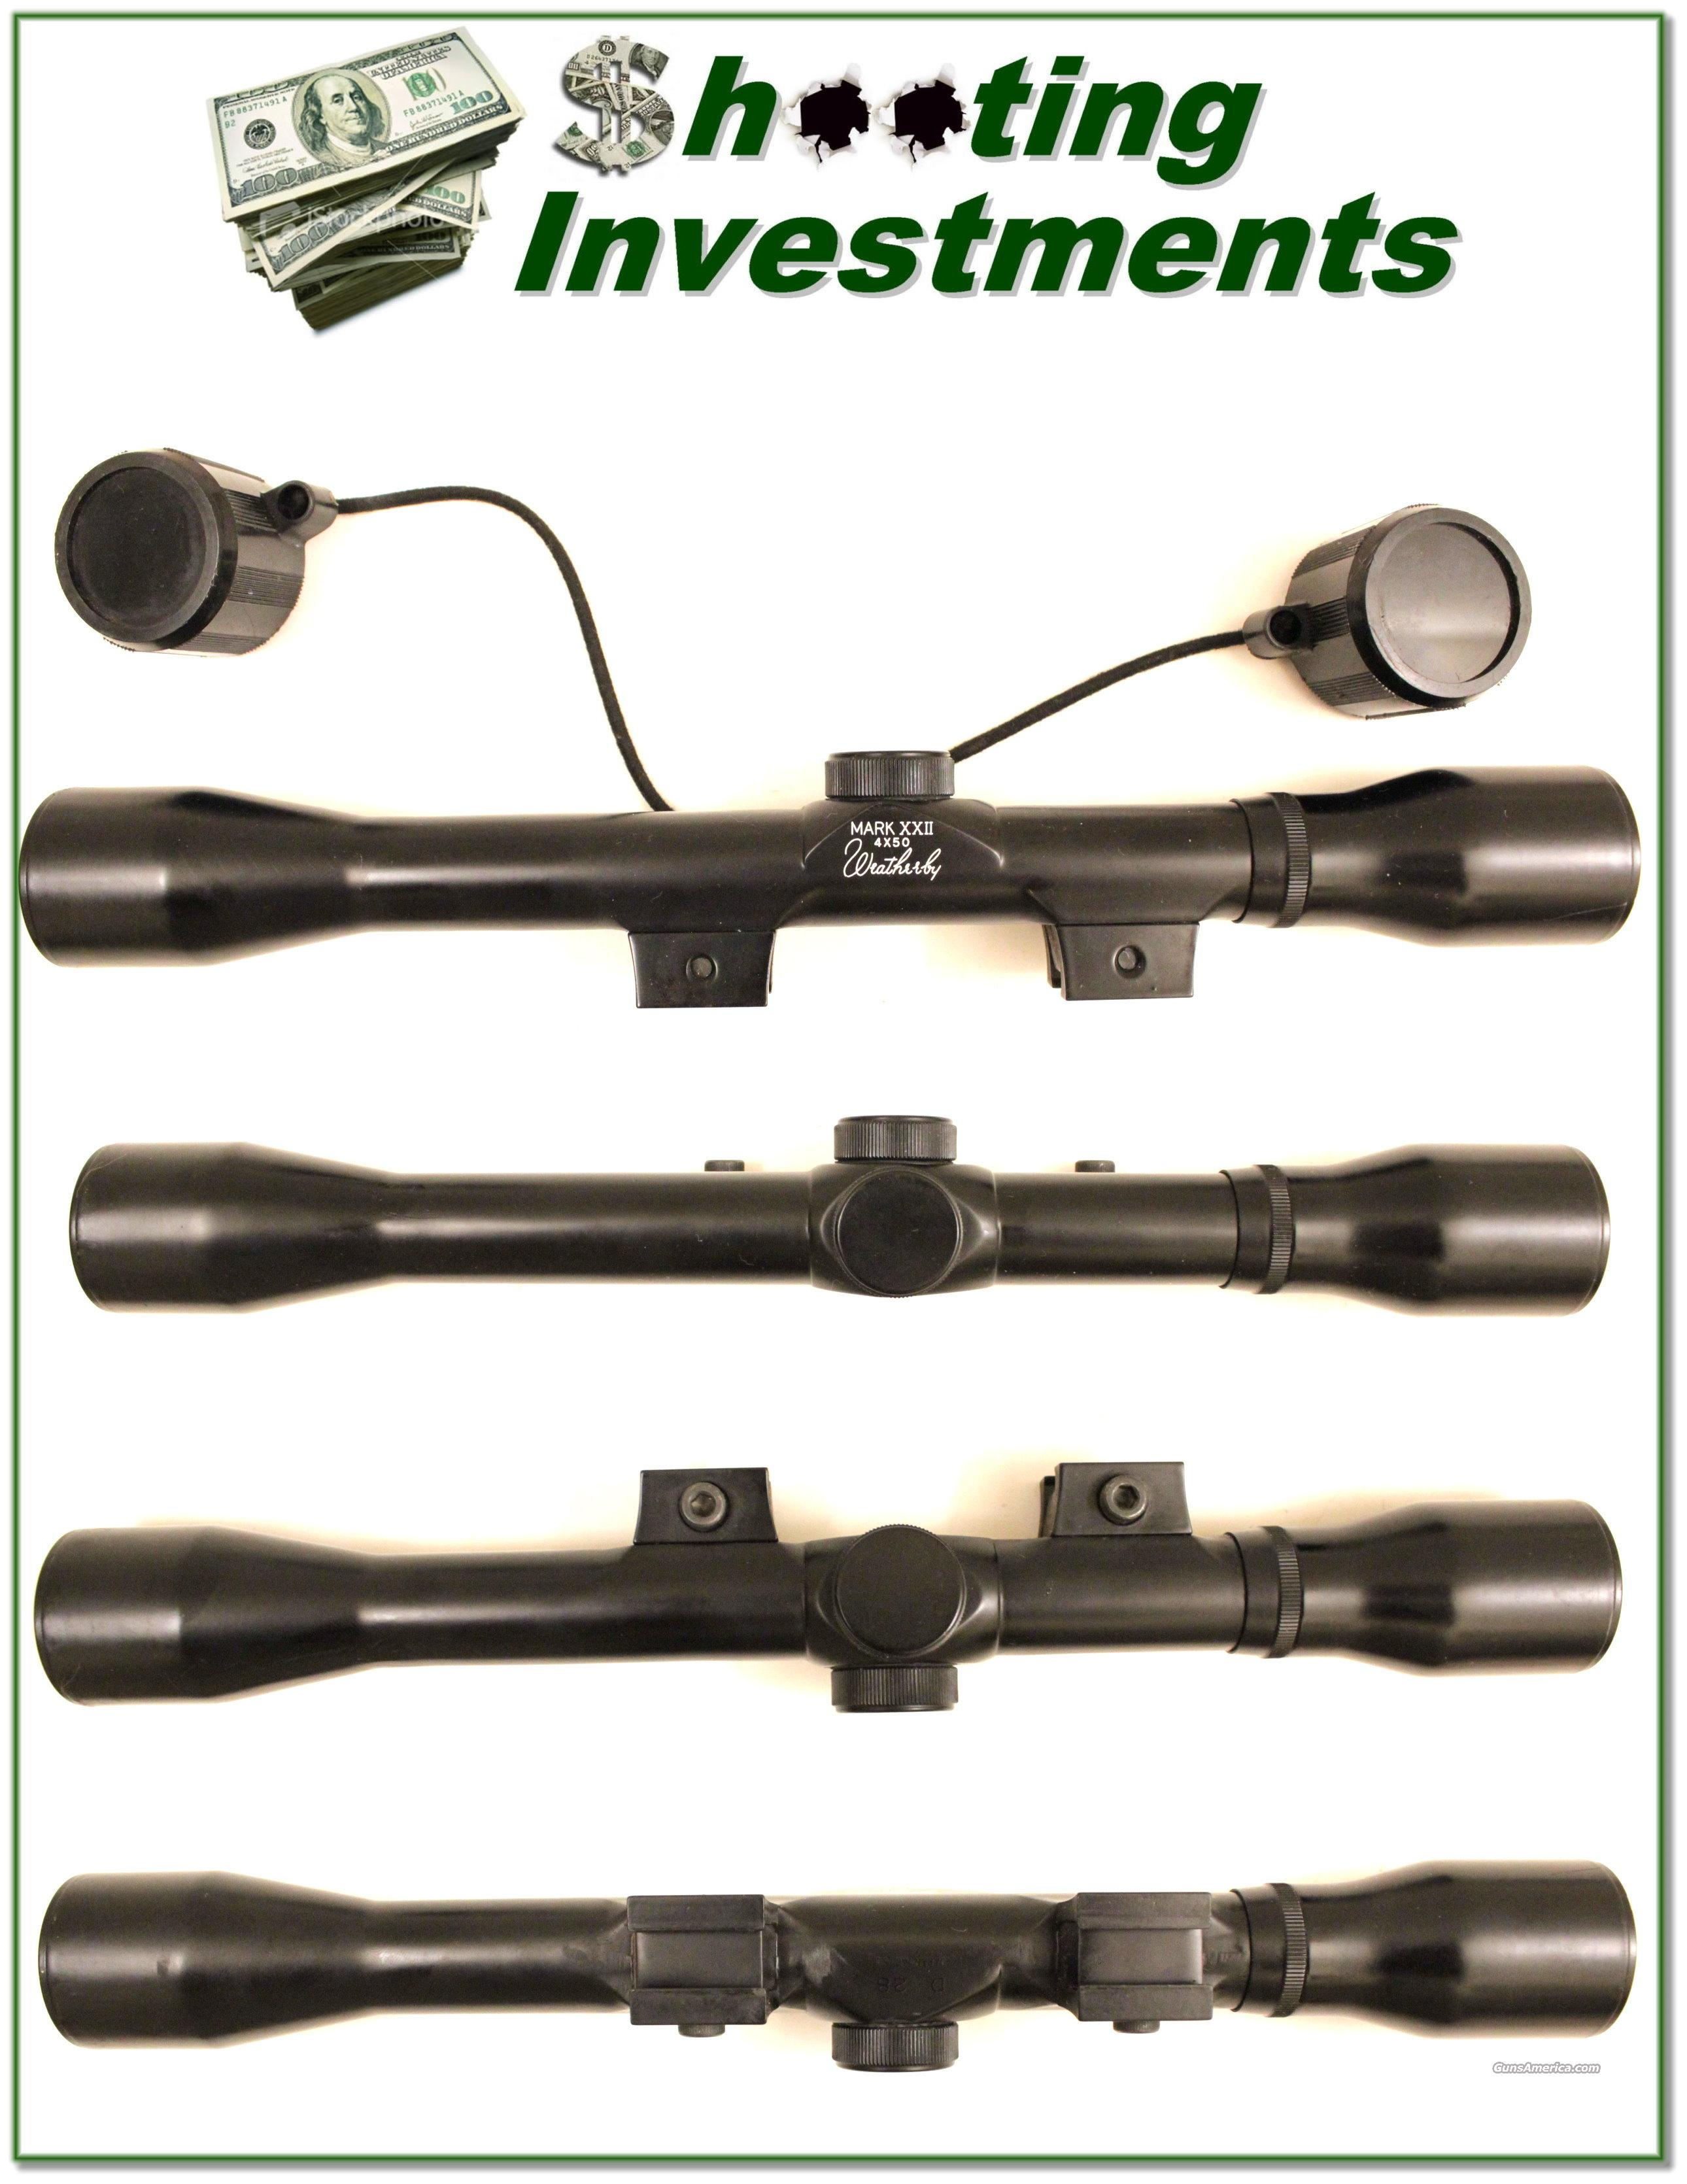 Weatherby XXII rimfire 4X scope like new with covers  Non-Guns > Scopes/Mounts/Rings & Optics > Rifle Scopes > Fixed Focal Length